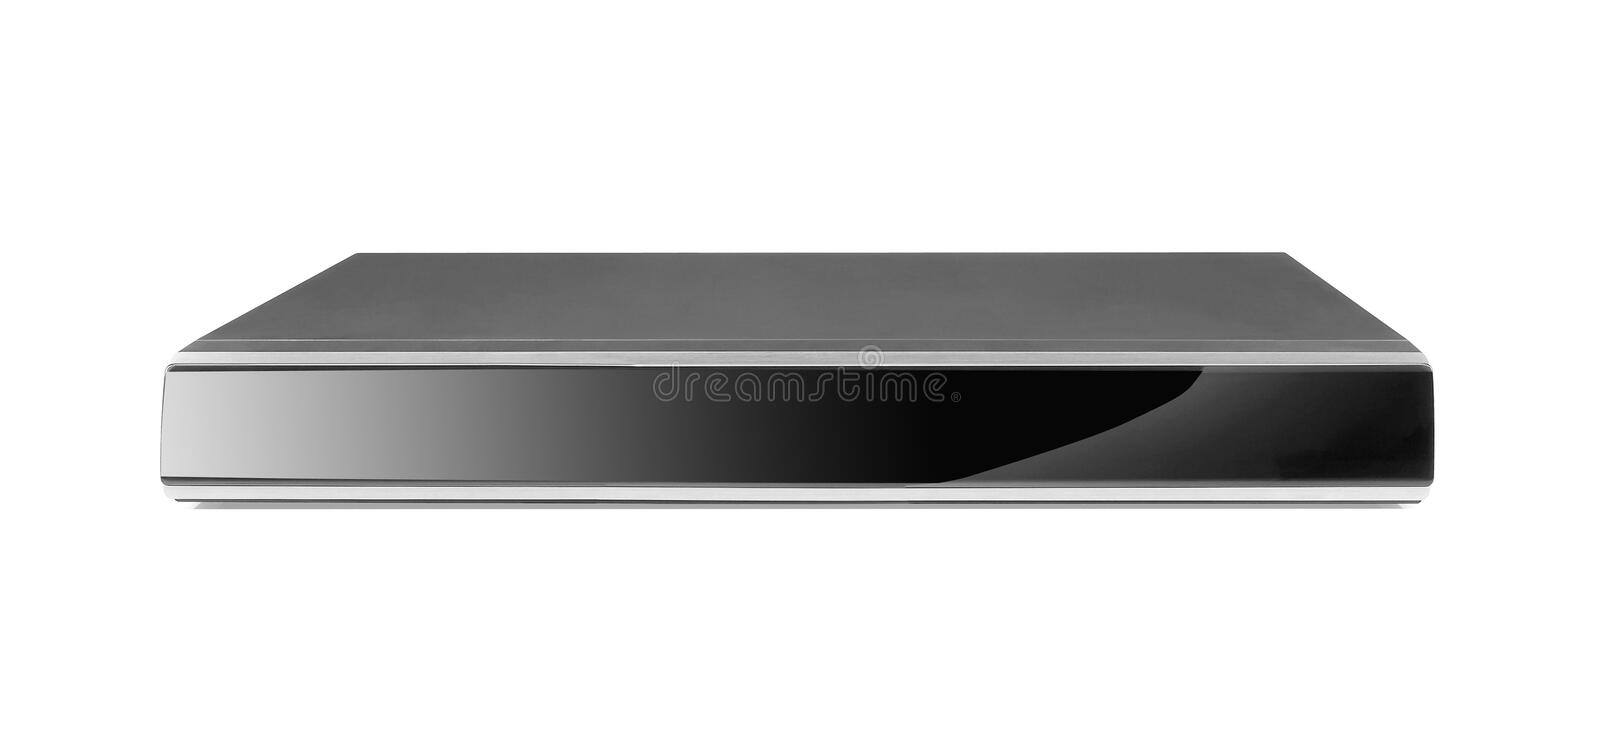 Black dvd player royalty free stock images